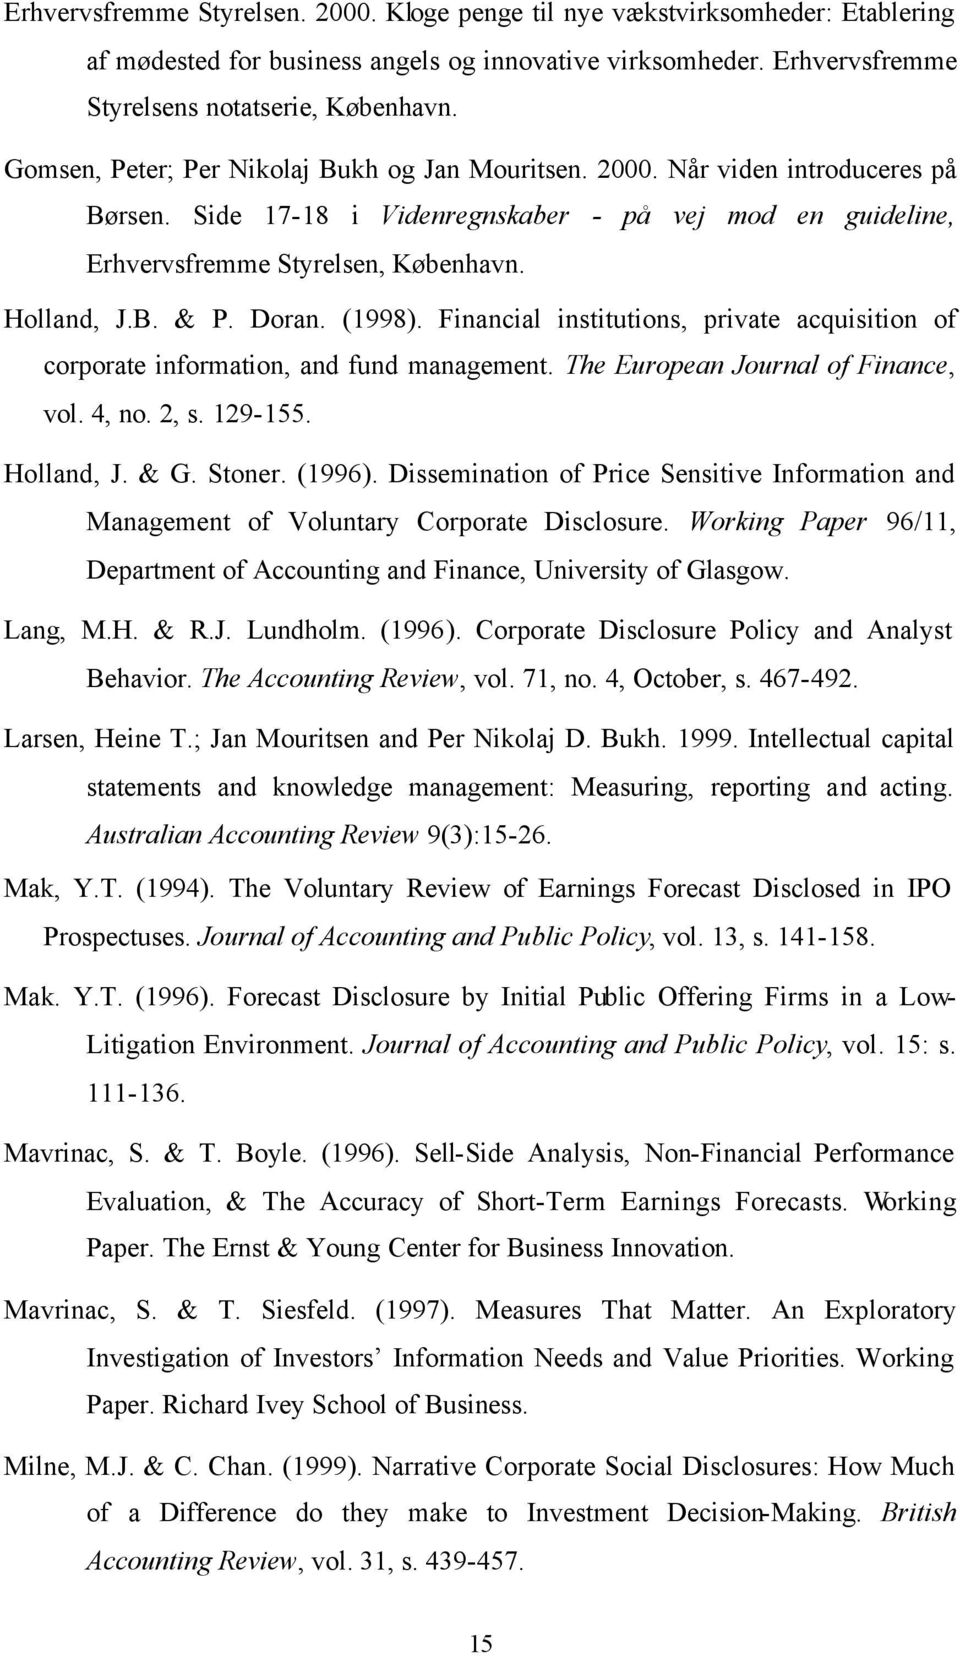 Doran. (1998). Financial institutions, private acquisition of corporate information, and fund management. The European Journal of Finance, vol. 4, no. 2, s. 129-155. Holland, J. & G. Stoner. (1996).